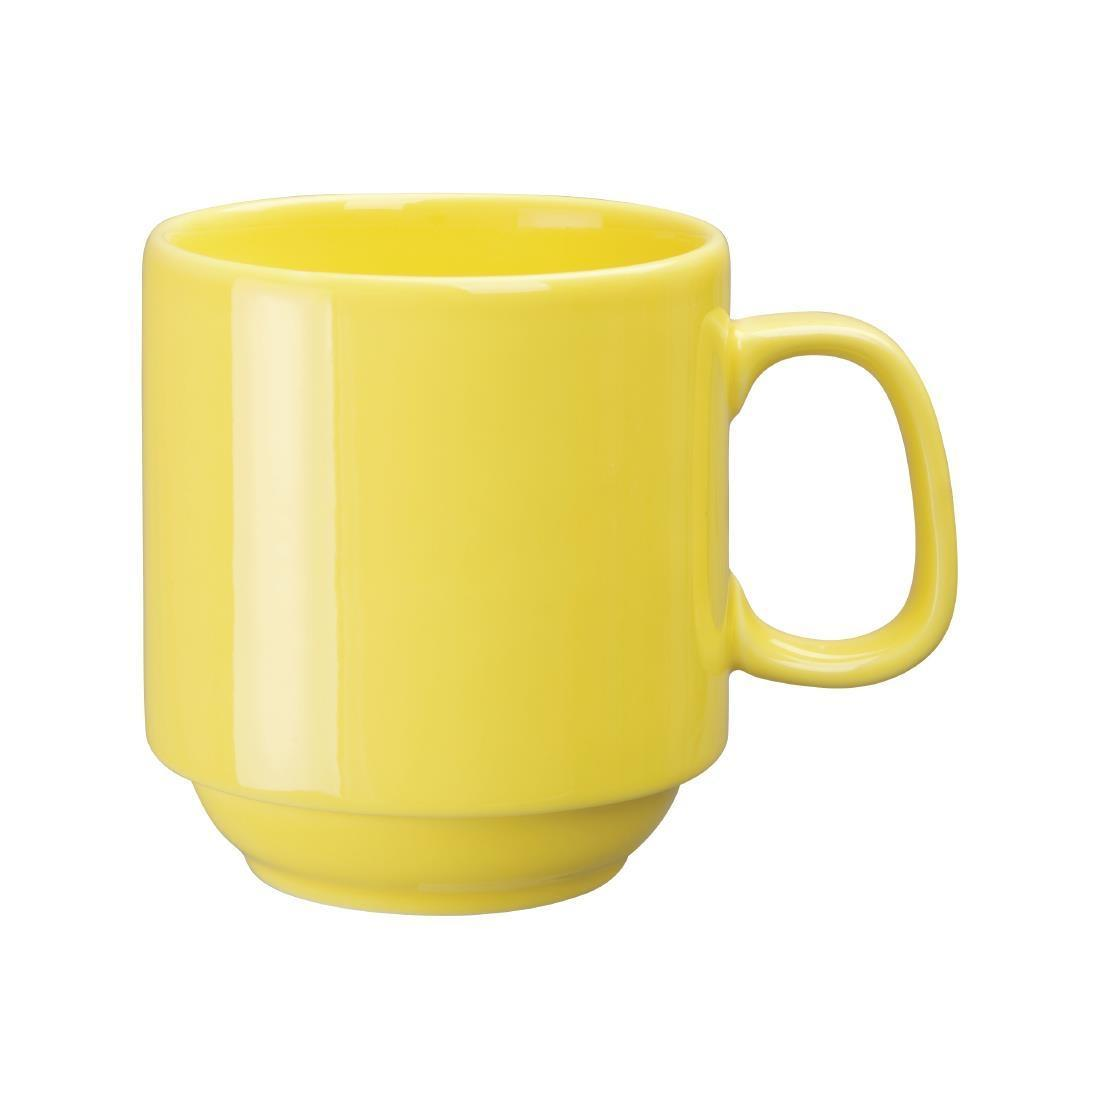 Olympia Heritage Stacking Mugs Yellow 300ml